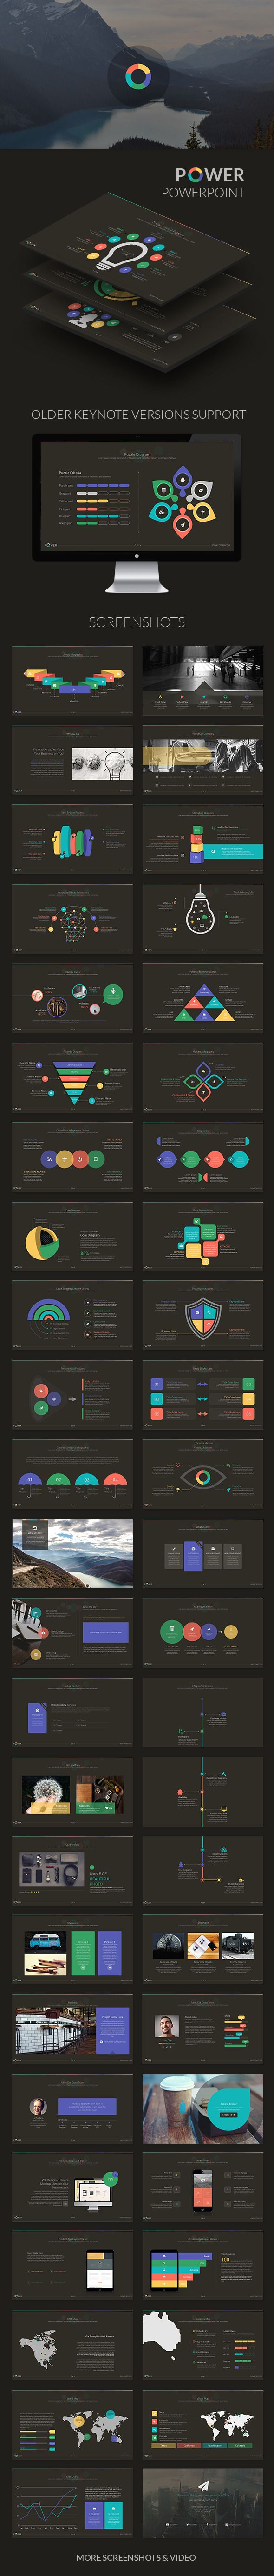 Power | Powerpoint Template | Download: http://graphicriver.net/item/power-powerpoint-template/11060482?ref=ksioks